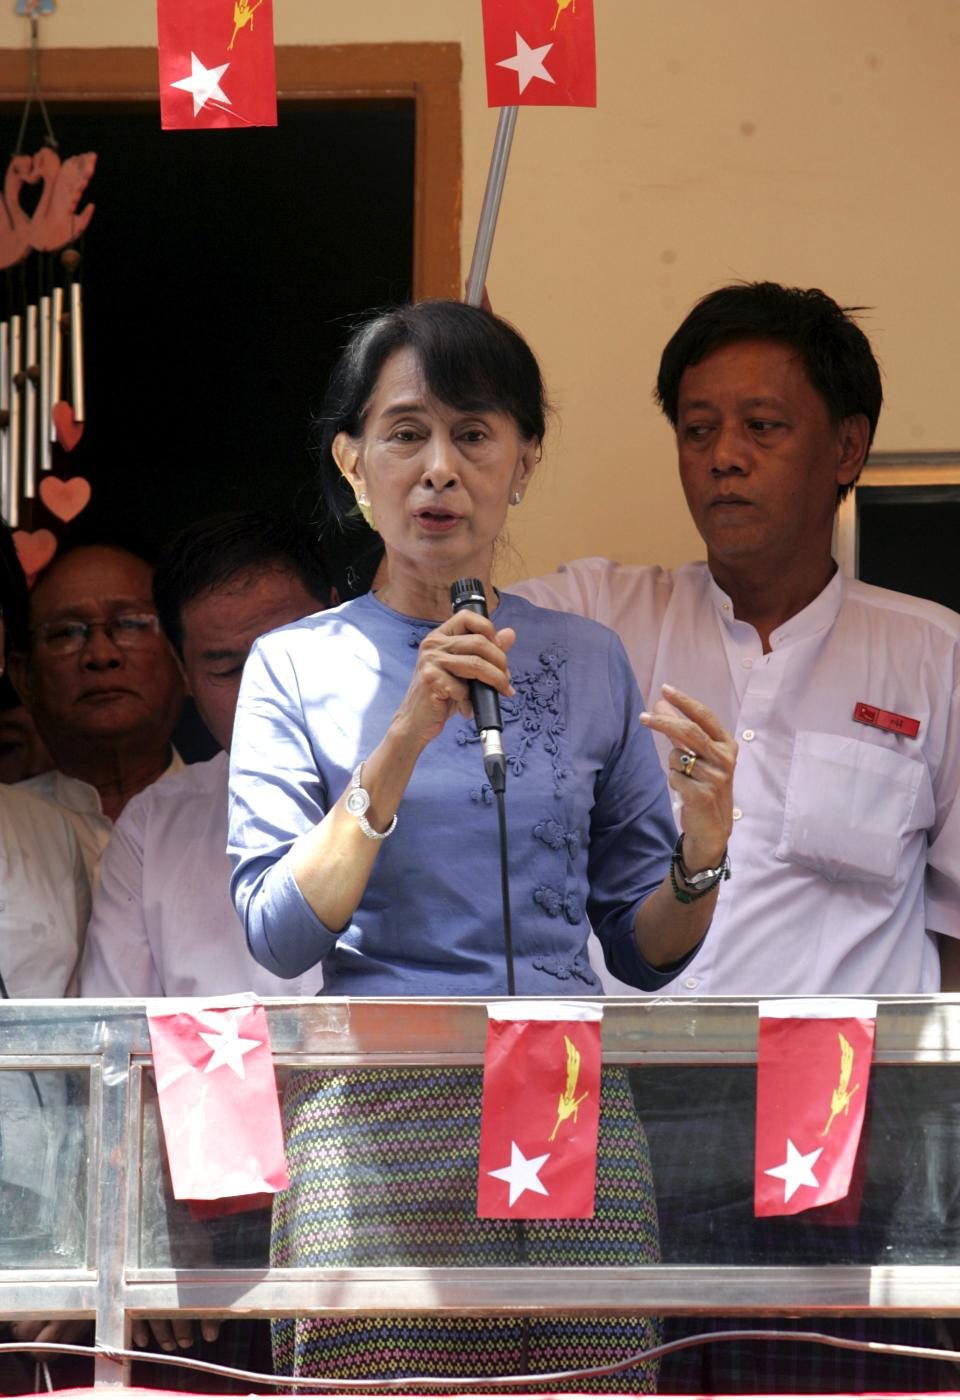 Myanmar opposition leader Aung San Suu Kyi speaks from a balcony of a newly-opened branch office of her National League for Democracy (NLD) party on Tuesday, May 8, 2012, in Yangon, Myanmar. (AP Photo/Khin Maung Win)